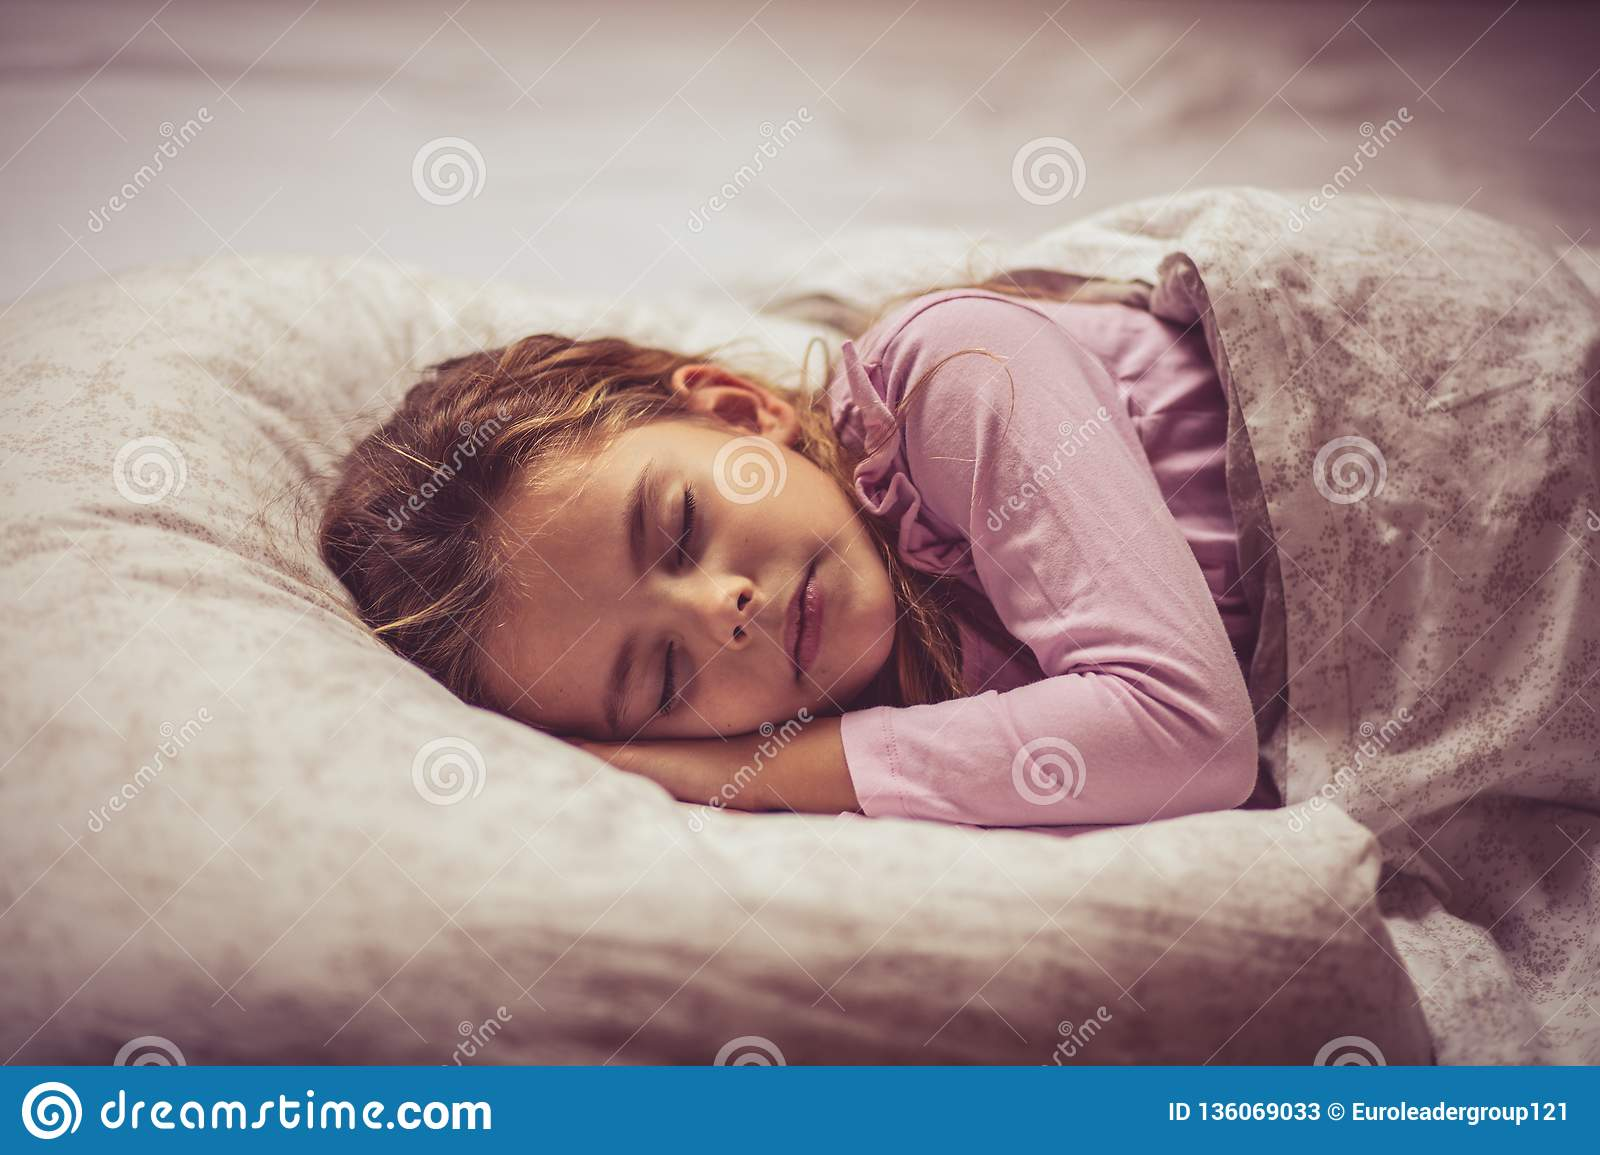 Sleep is important for a growing mind